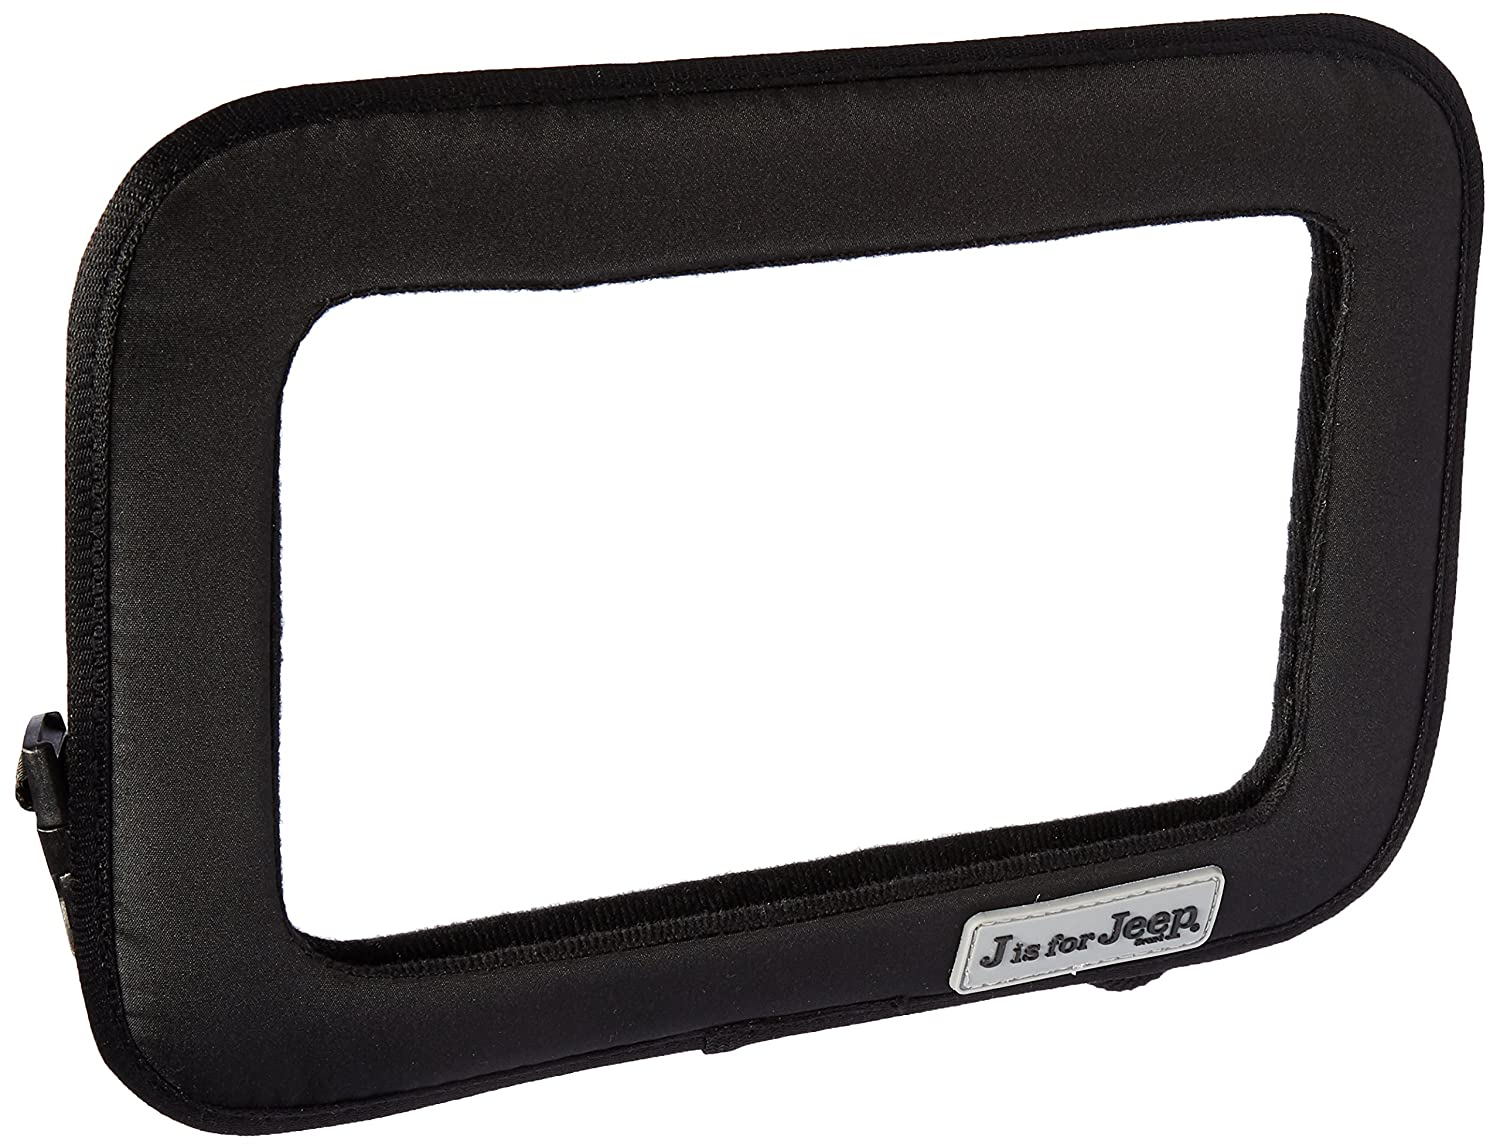 Jeep Large Back Seat Baby View Mirror, Black 90197R